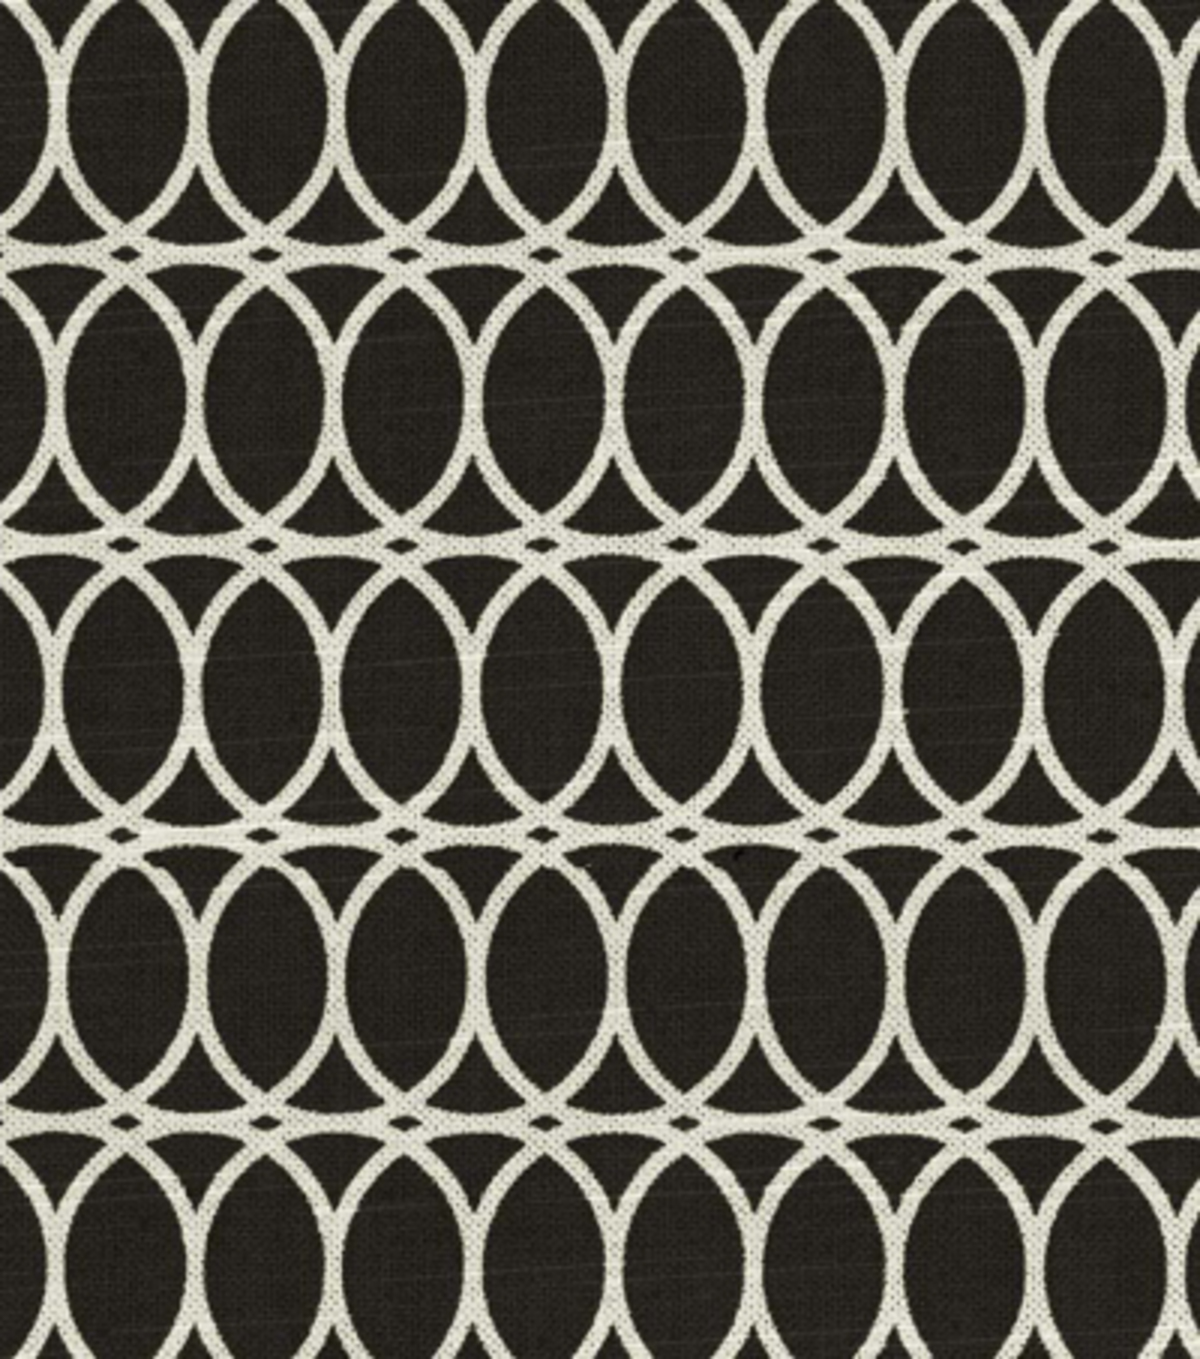 Home Decor 8\u0022x8\u0022 Fabric Swatch-HGTV HOME Curl Up Onyx